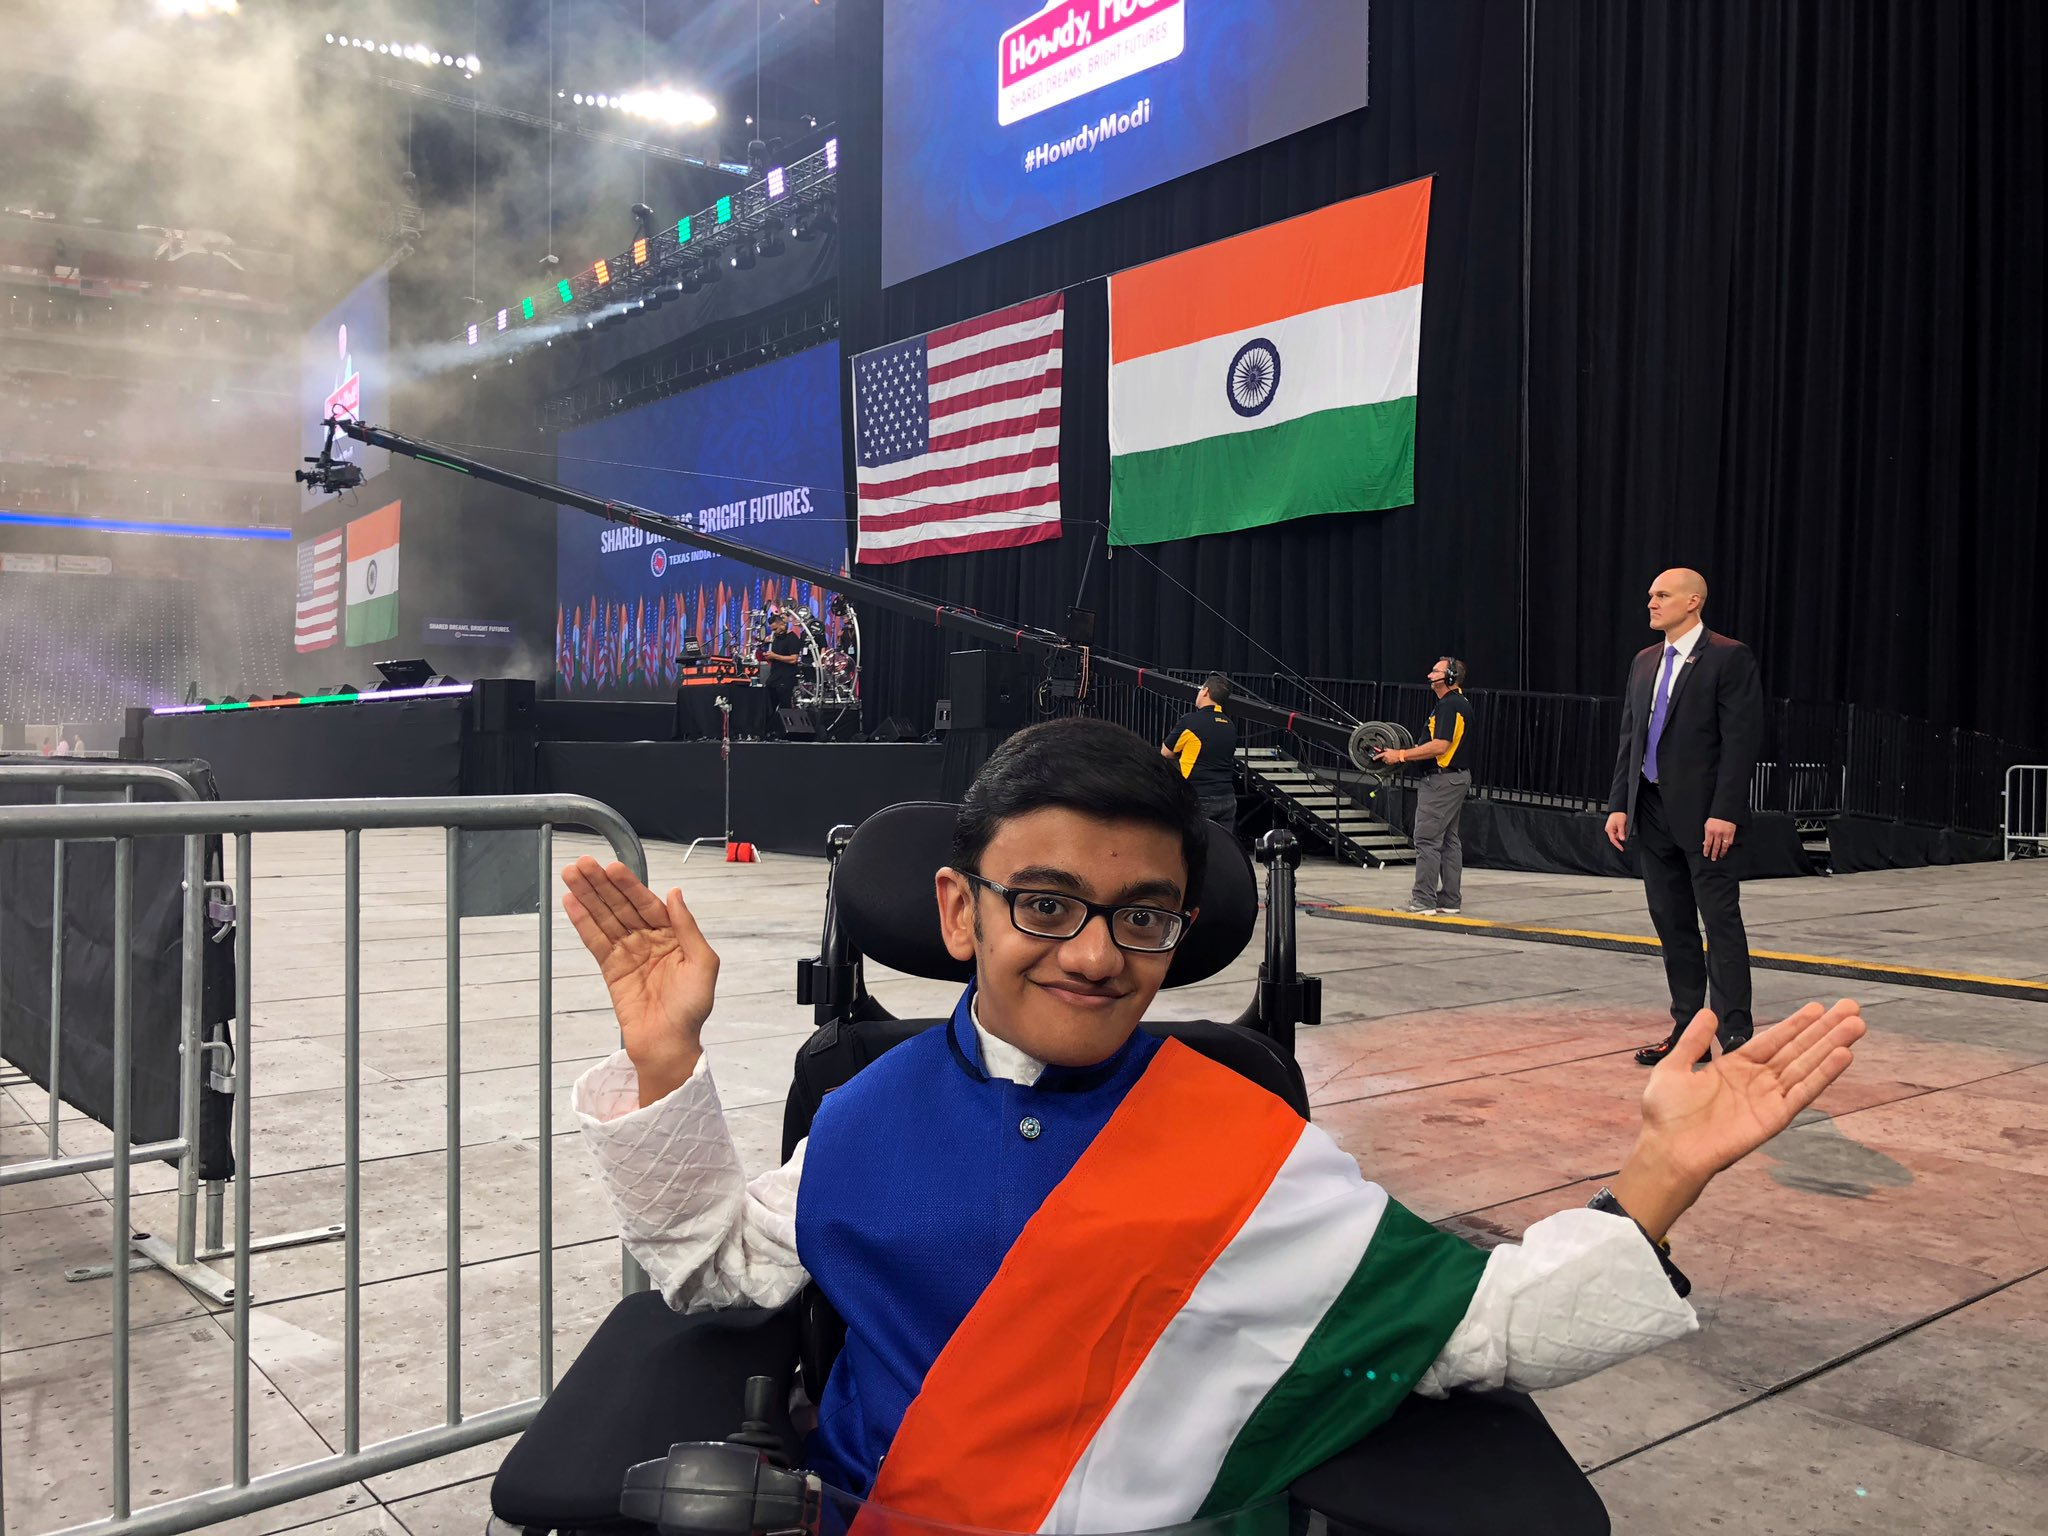 Sparsh first shot to viral fame at the age of 12 when he recorded a video covering the Eminem song 'Not Afraid'